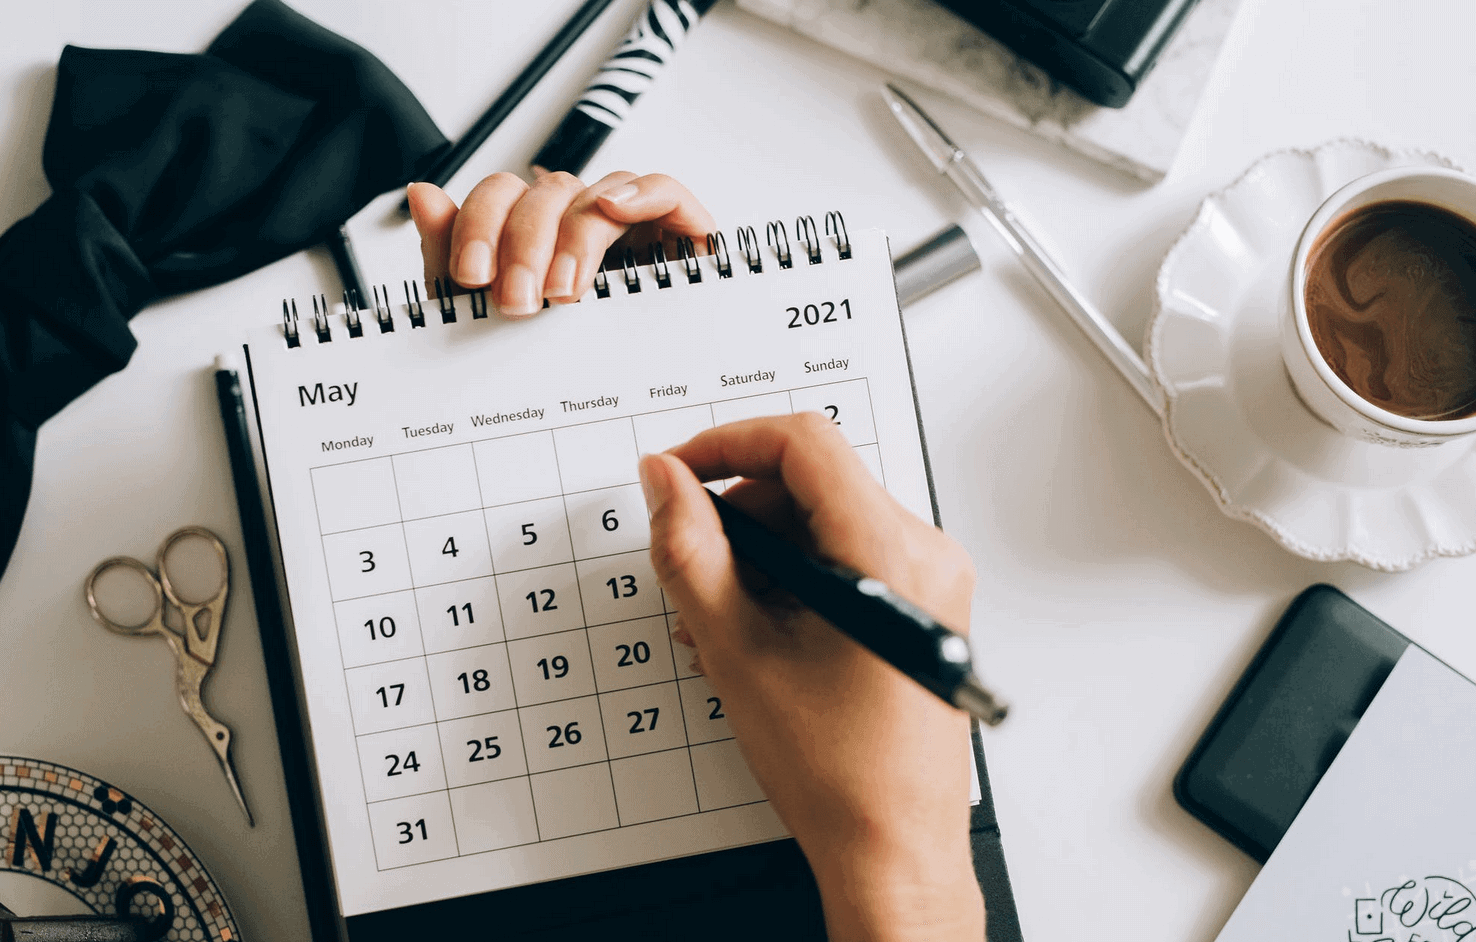 Person writing on May 2021 calendar